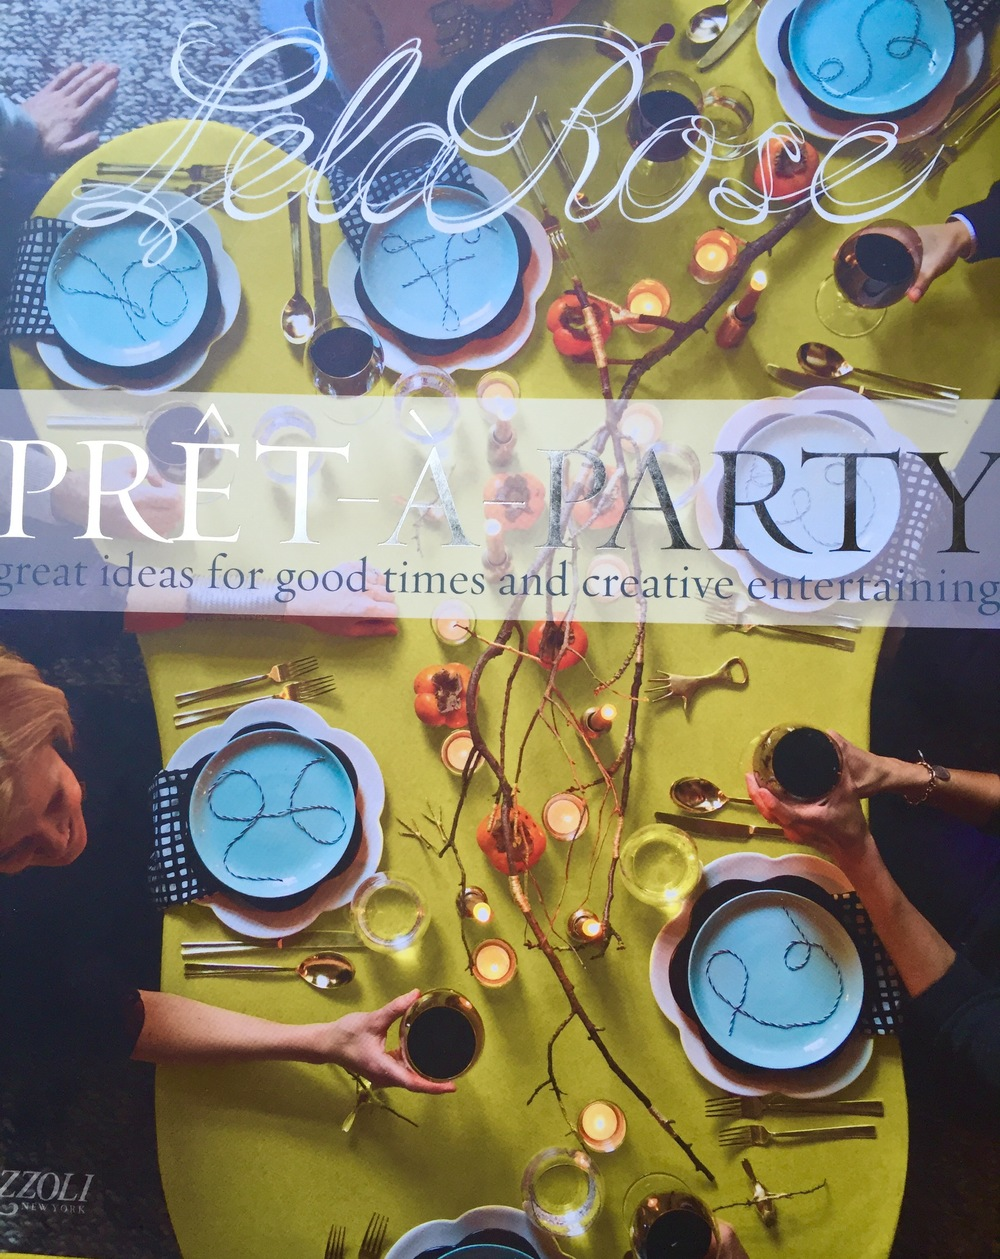 """Pret-a-Party"" by Lela Rose. Get your copy here!"